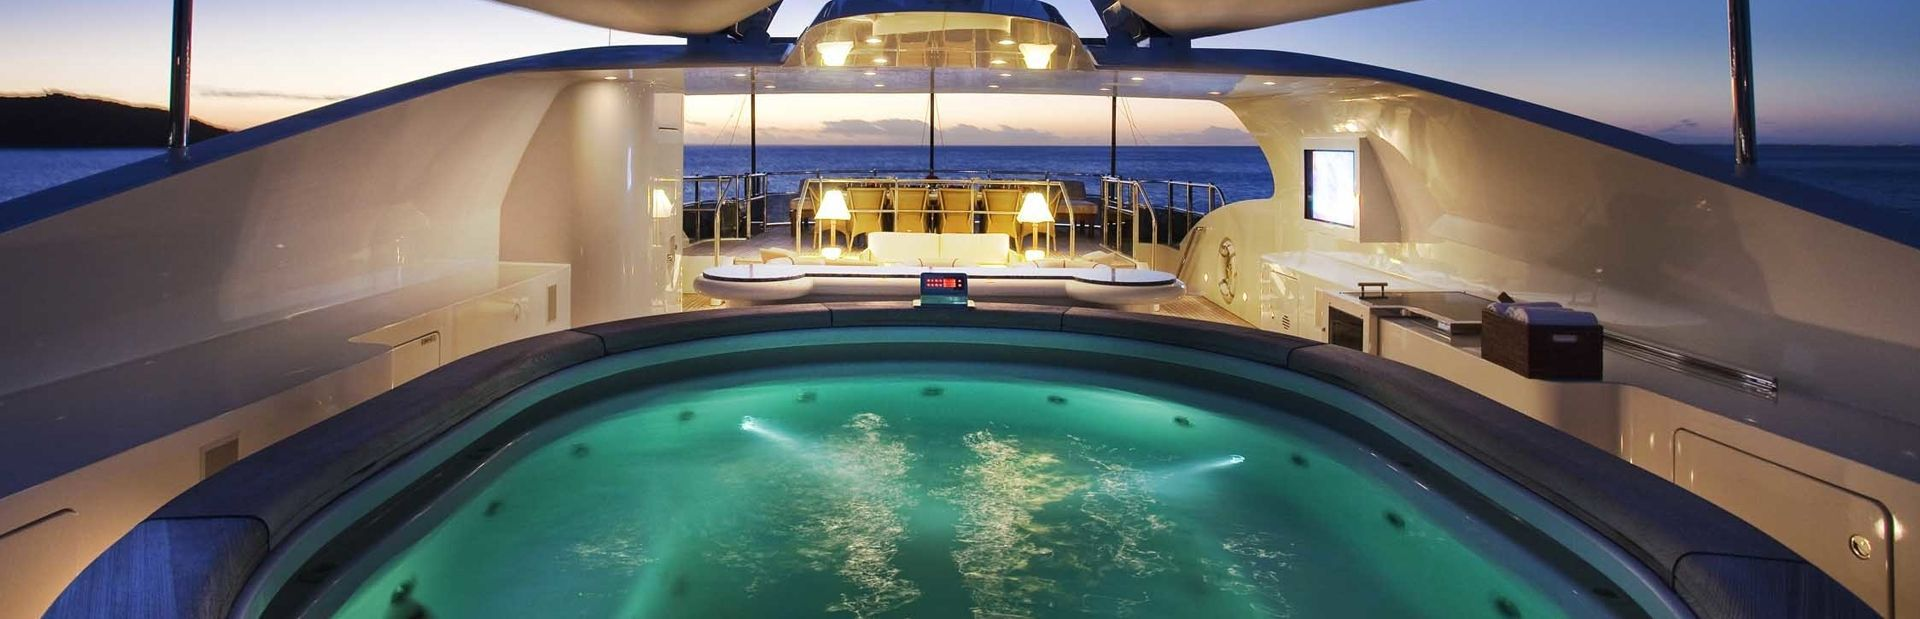 Charter yacht Jaguar on deck pool